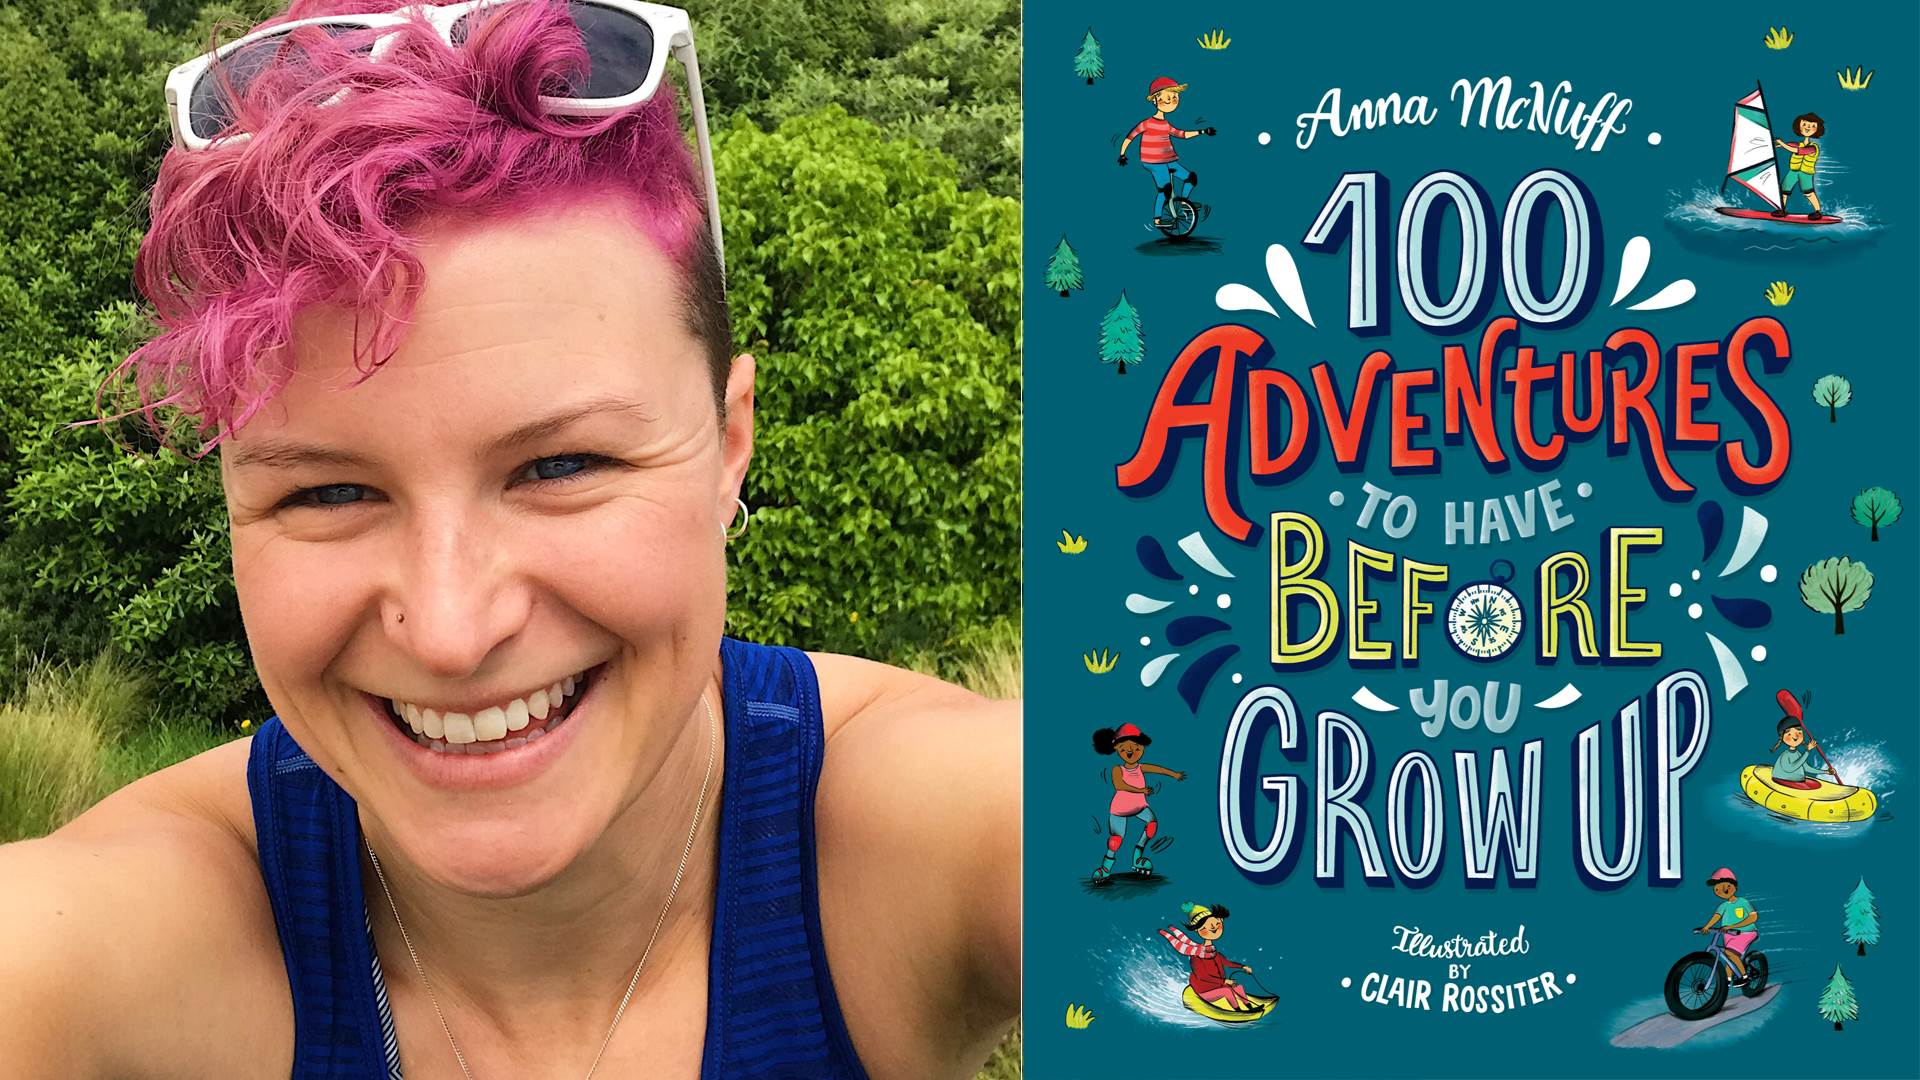 Author Anna McNuff and the cover of her book, 100 Adventures to Have Before You Grow Up